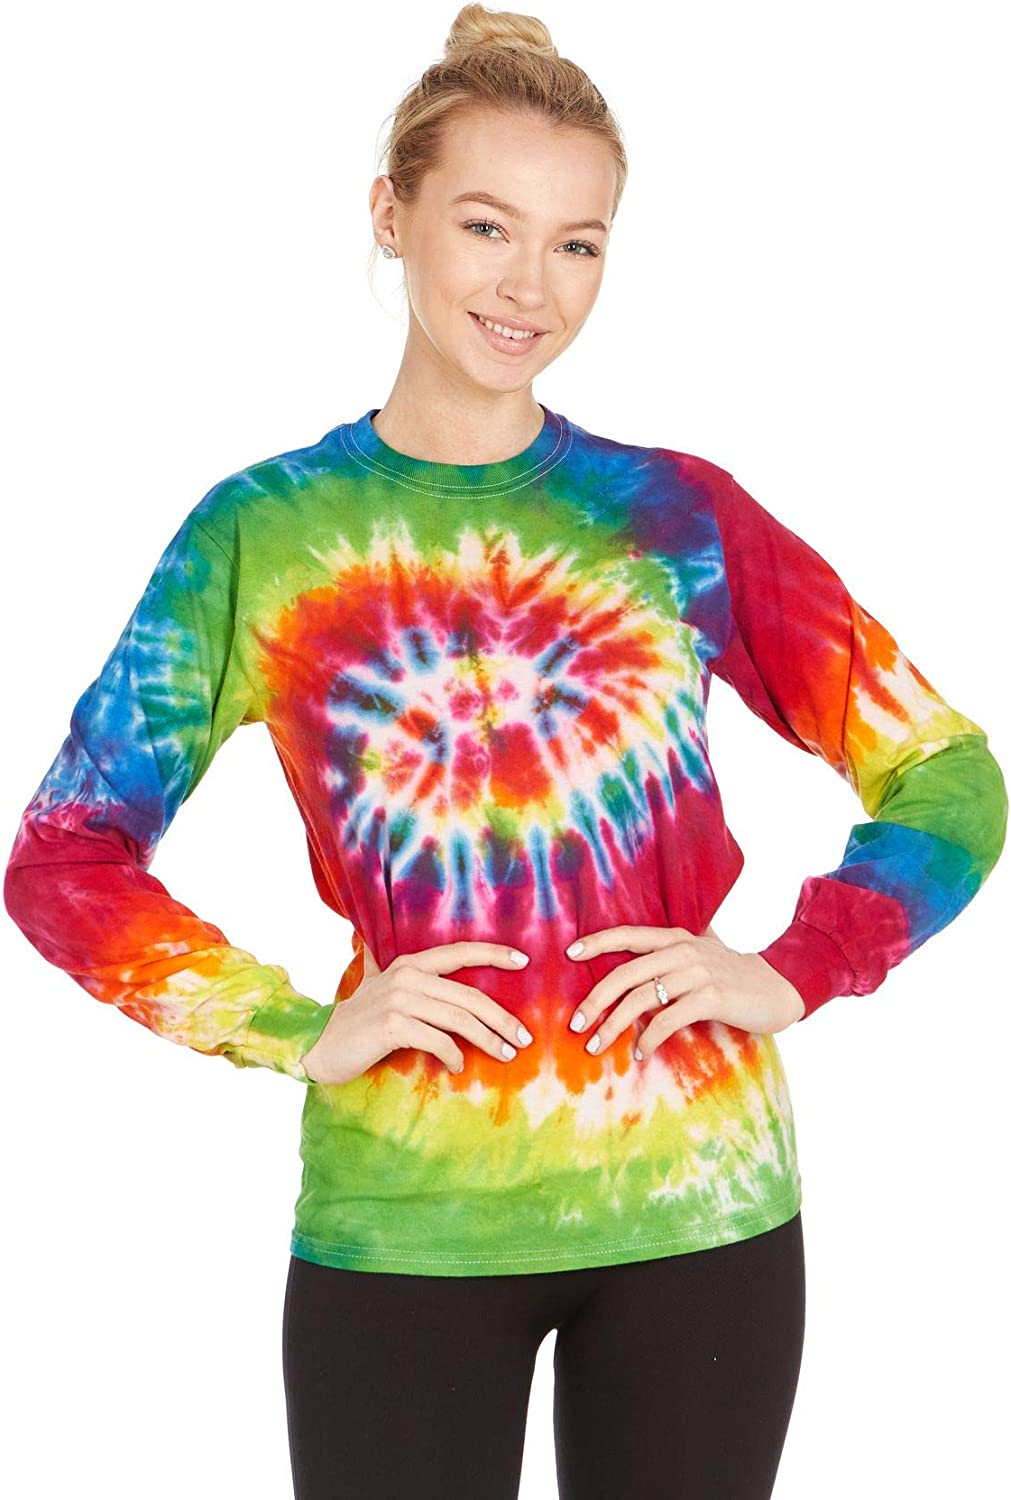 Youth Regular Long Sleeve Crew Neck Cotton Nature Peace Sign Tee Top for Youth